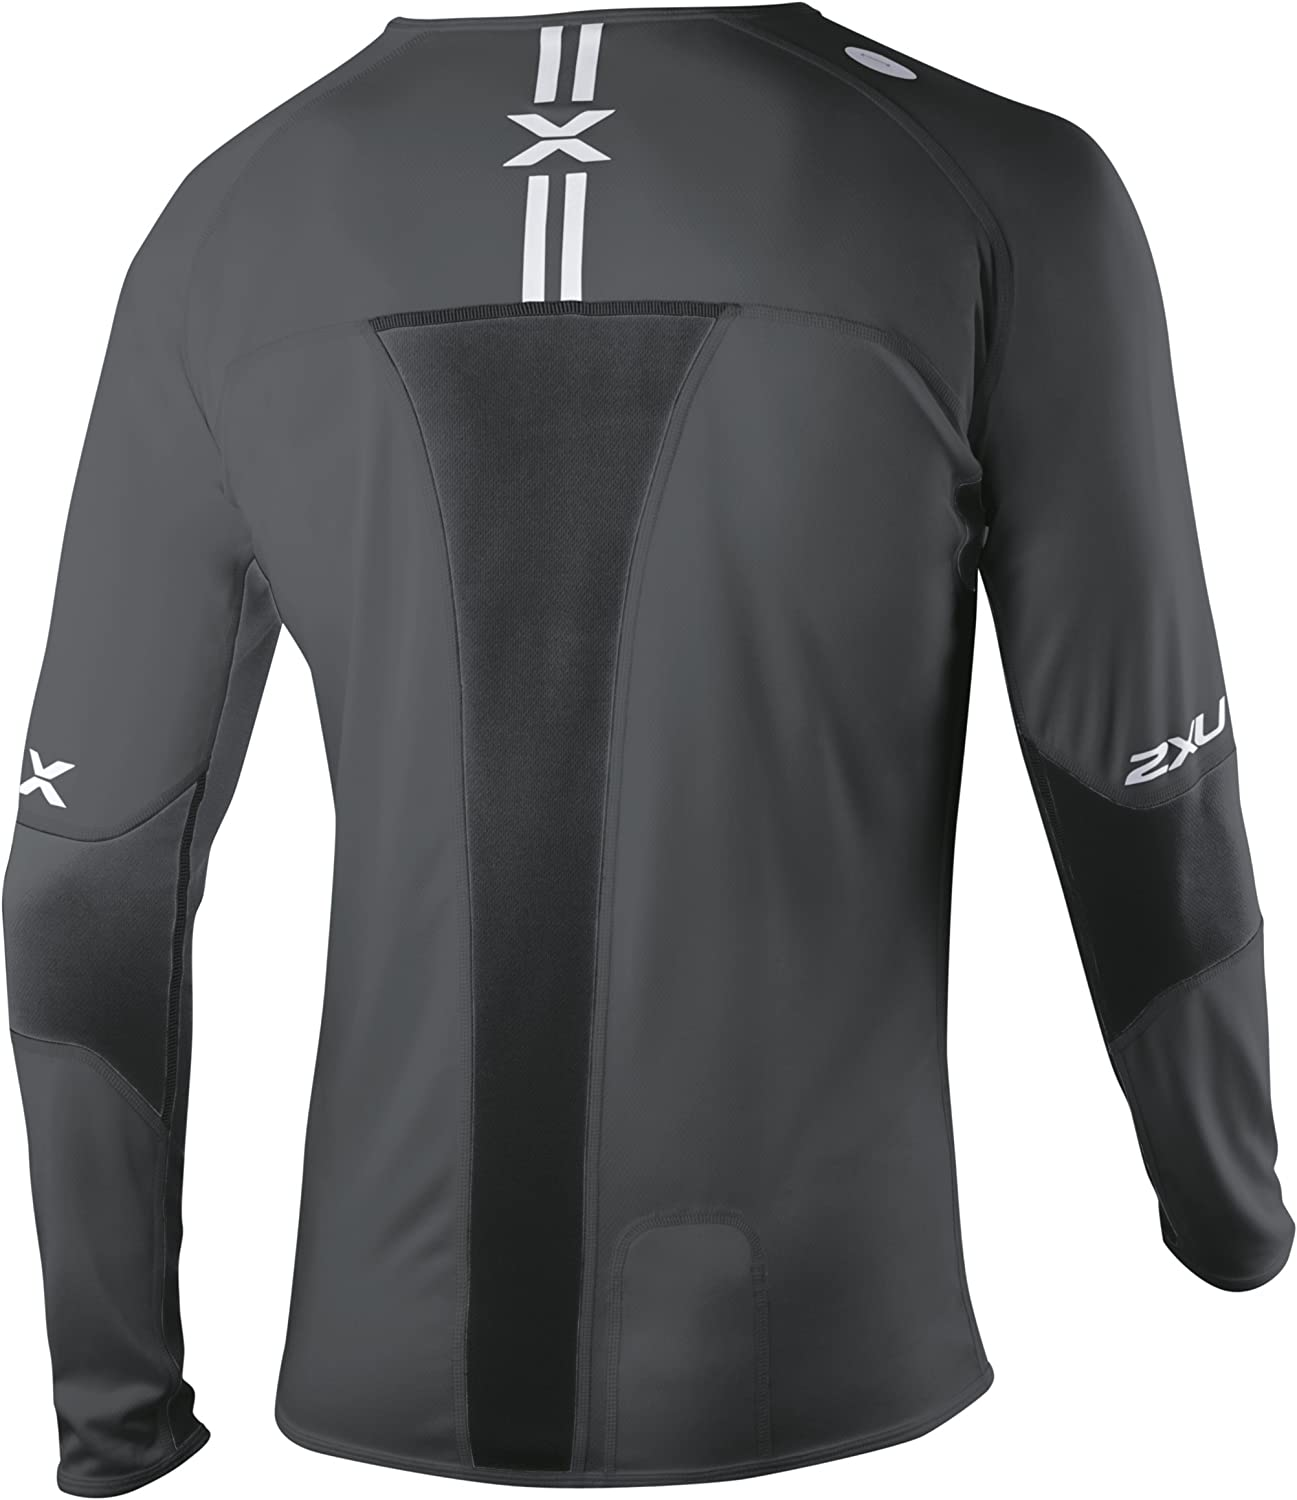 2XU Men's Compression Long Sleeve Running Top Black / Black